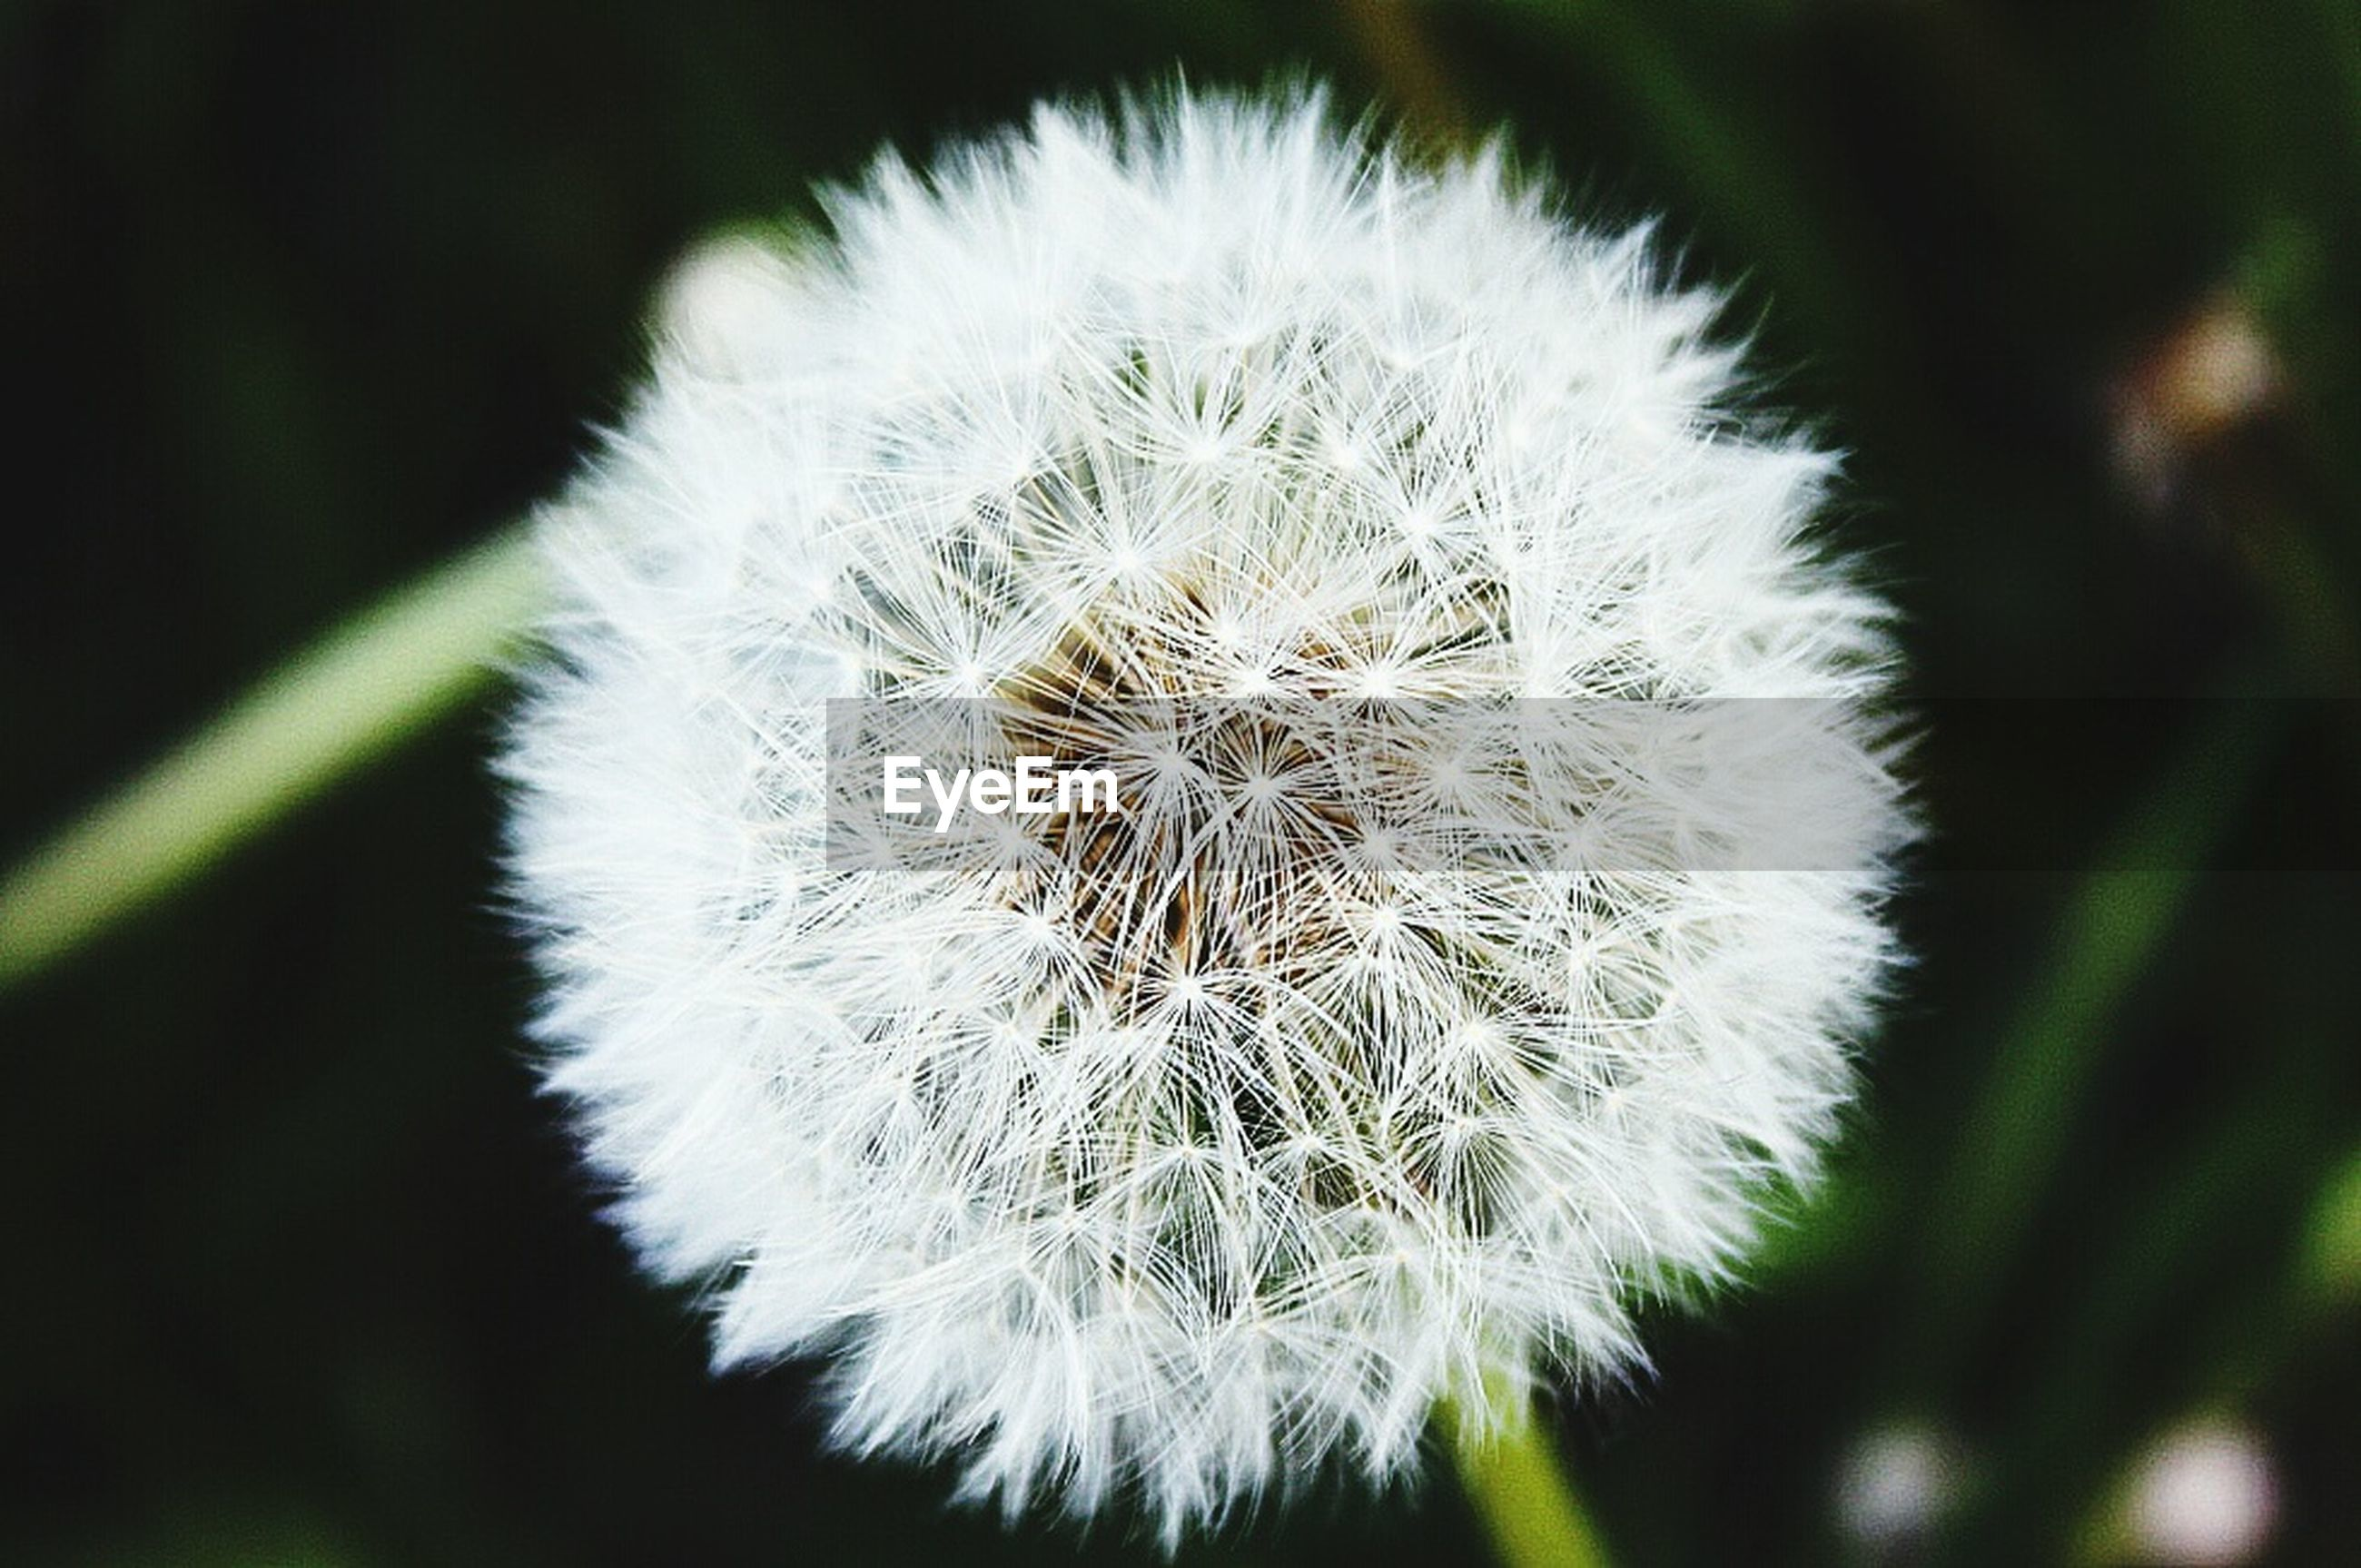 dandelion, flower, fragility, freshness, growth, flower head, close-up, focus on foreground, beauty in nature, single flower, nature, white color, softness, uncultivated, wildflower, plant, stem, dandelion seed, in bloom, selective focus